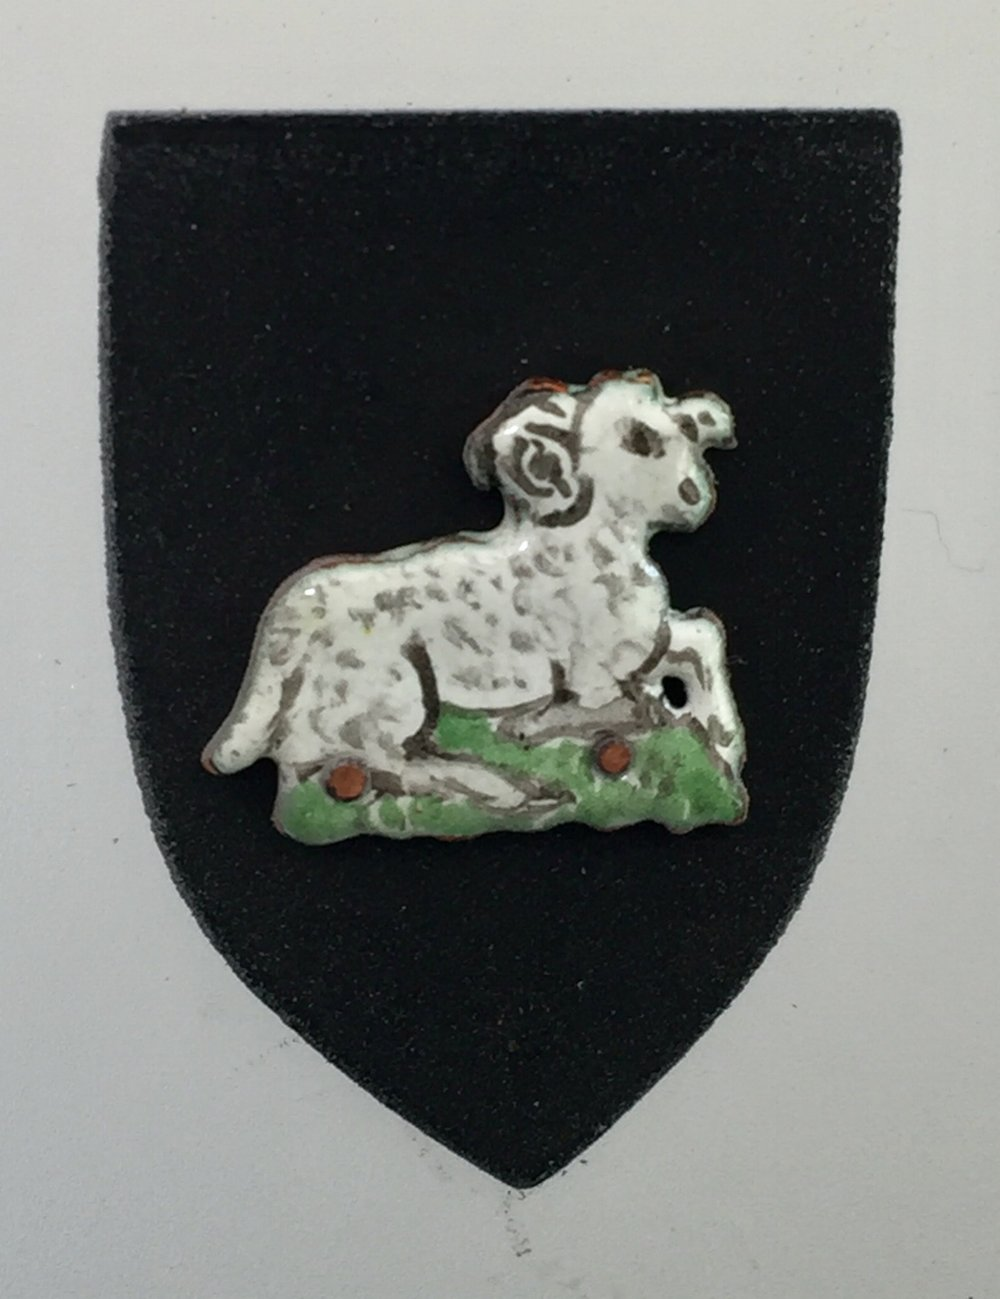 Curly-Horned Sheep on Black Shield